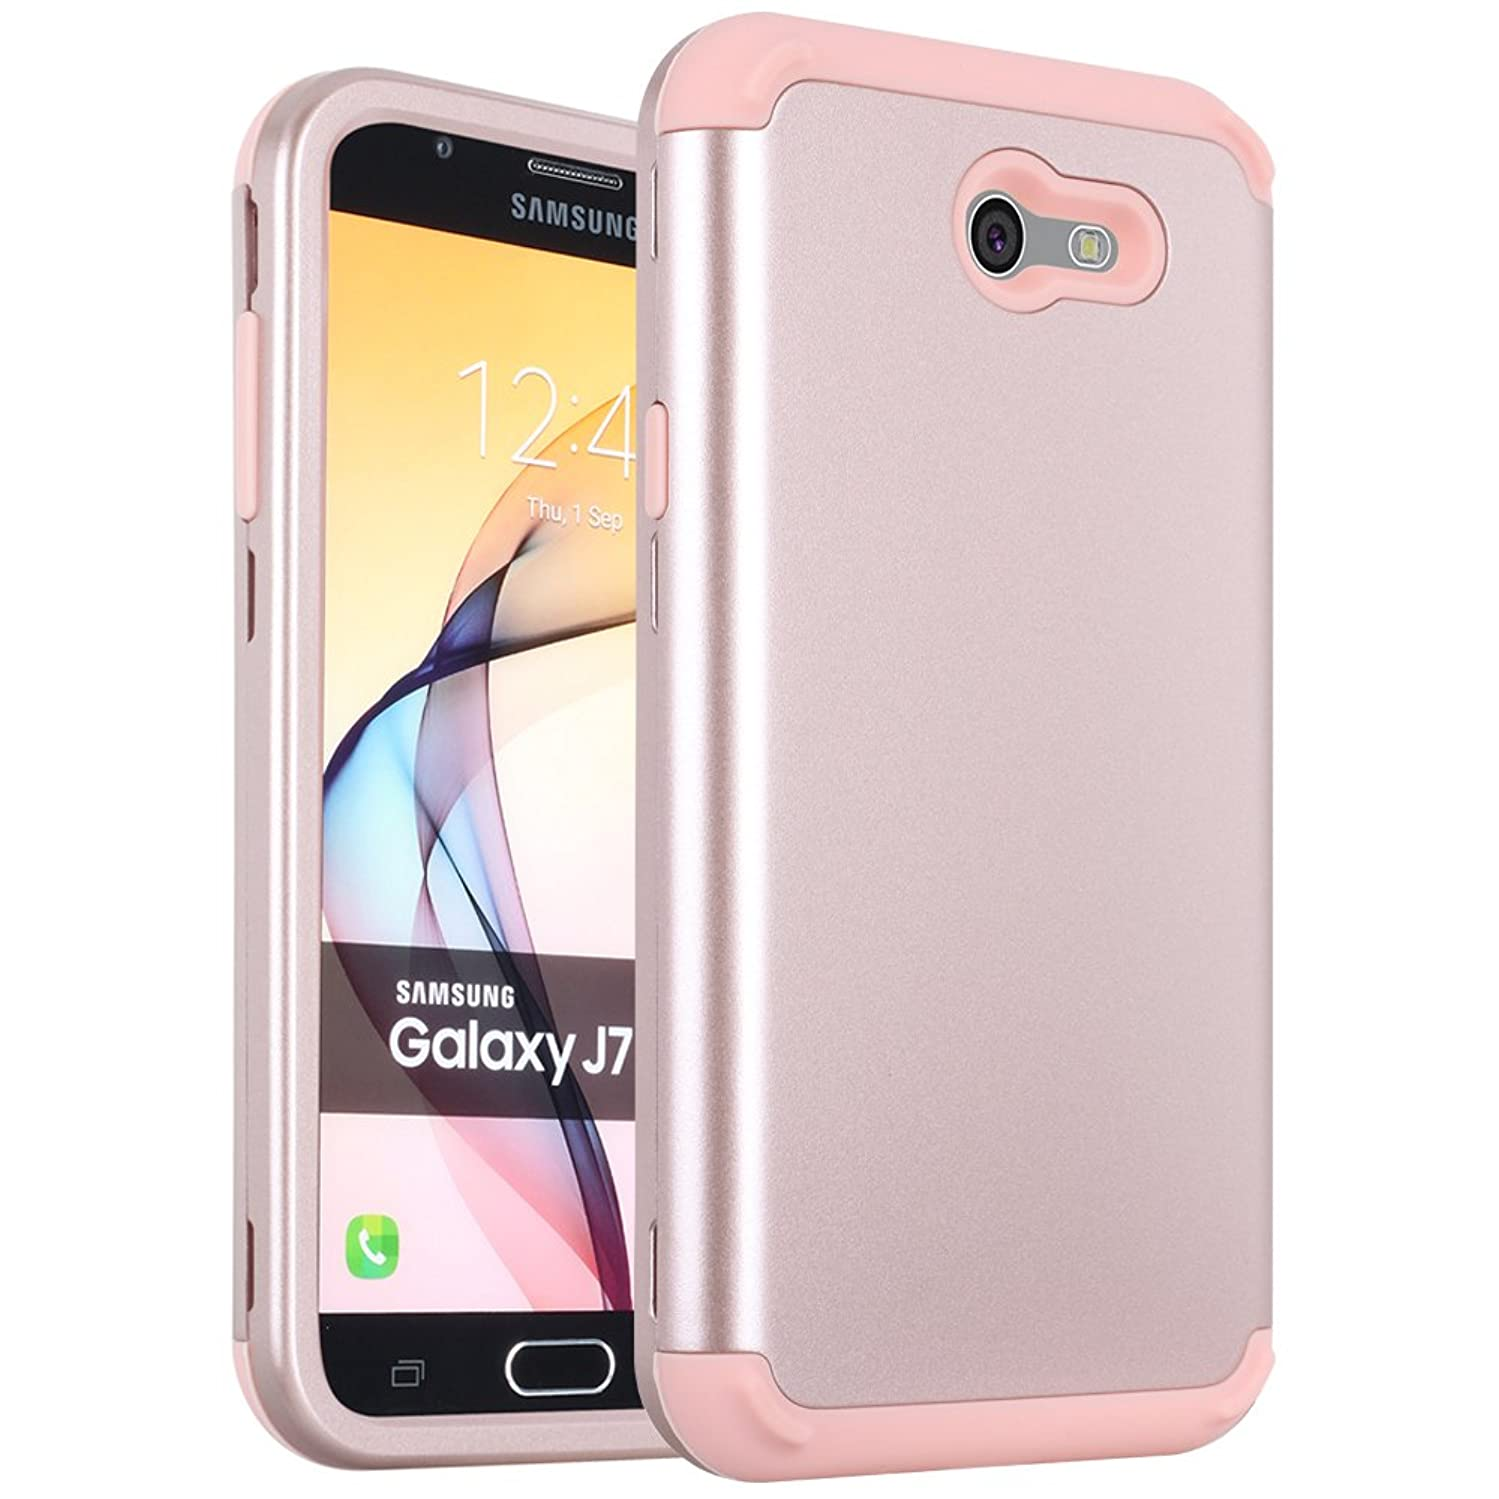 Galaxy J7 2017 Case, Galaxy J7 Prime Case,Galaxy J7 Perx Case,Alkax Heavy Duty Hybrid Dual Layer Armor Protective Cover Hard PC Slim Silicone Shockproof for Samsung Galaxy J7 Sky Pro / J7 V -Rose Gold